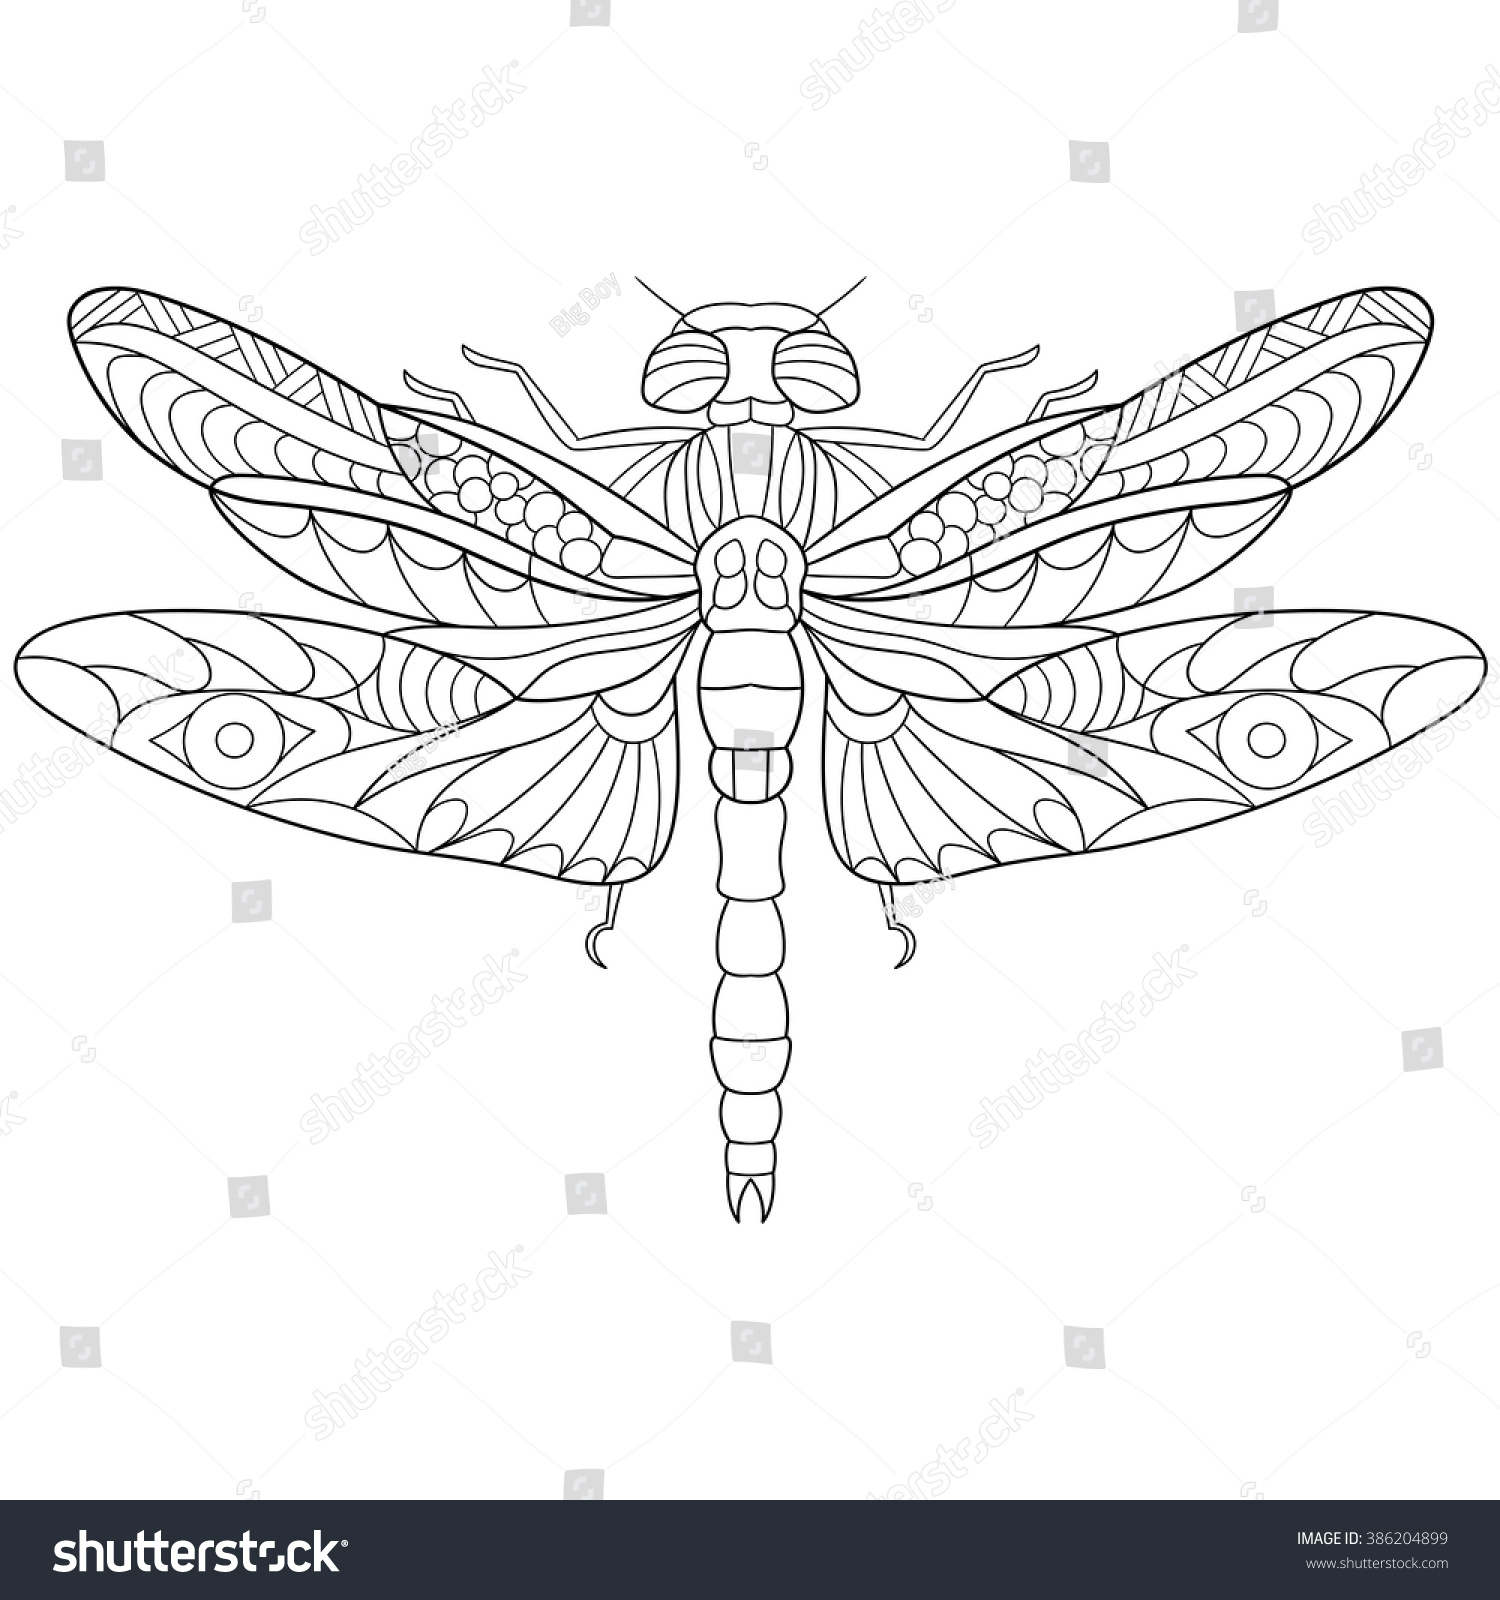 Free coloring pages dragonfly - Zentangle Stylized Cartoon Dragonfly Insect Isolated On White Background Sketch For Adult Antistress Coloring Page Hand Drawn Doodle Zentangle